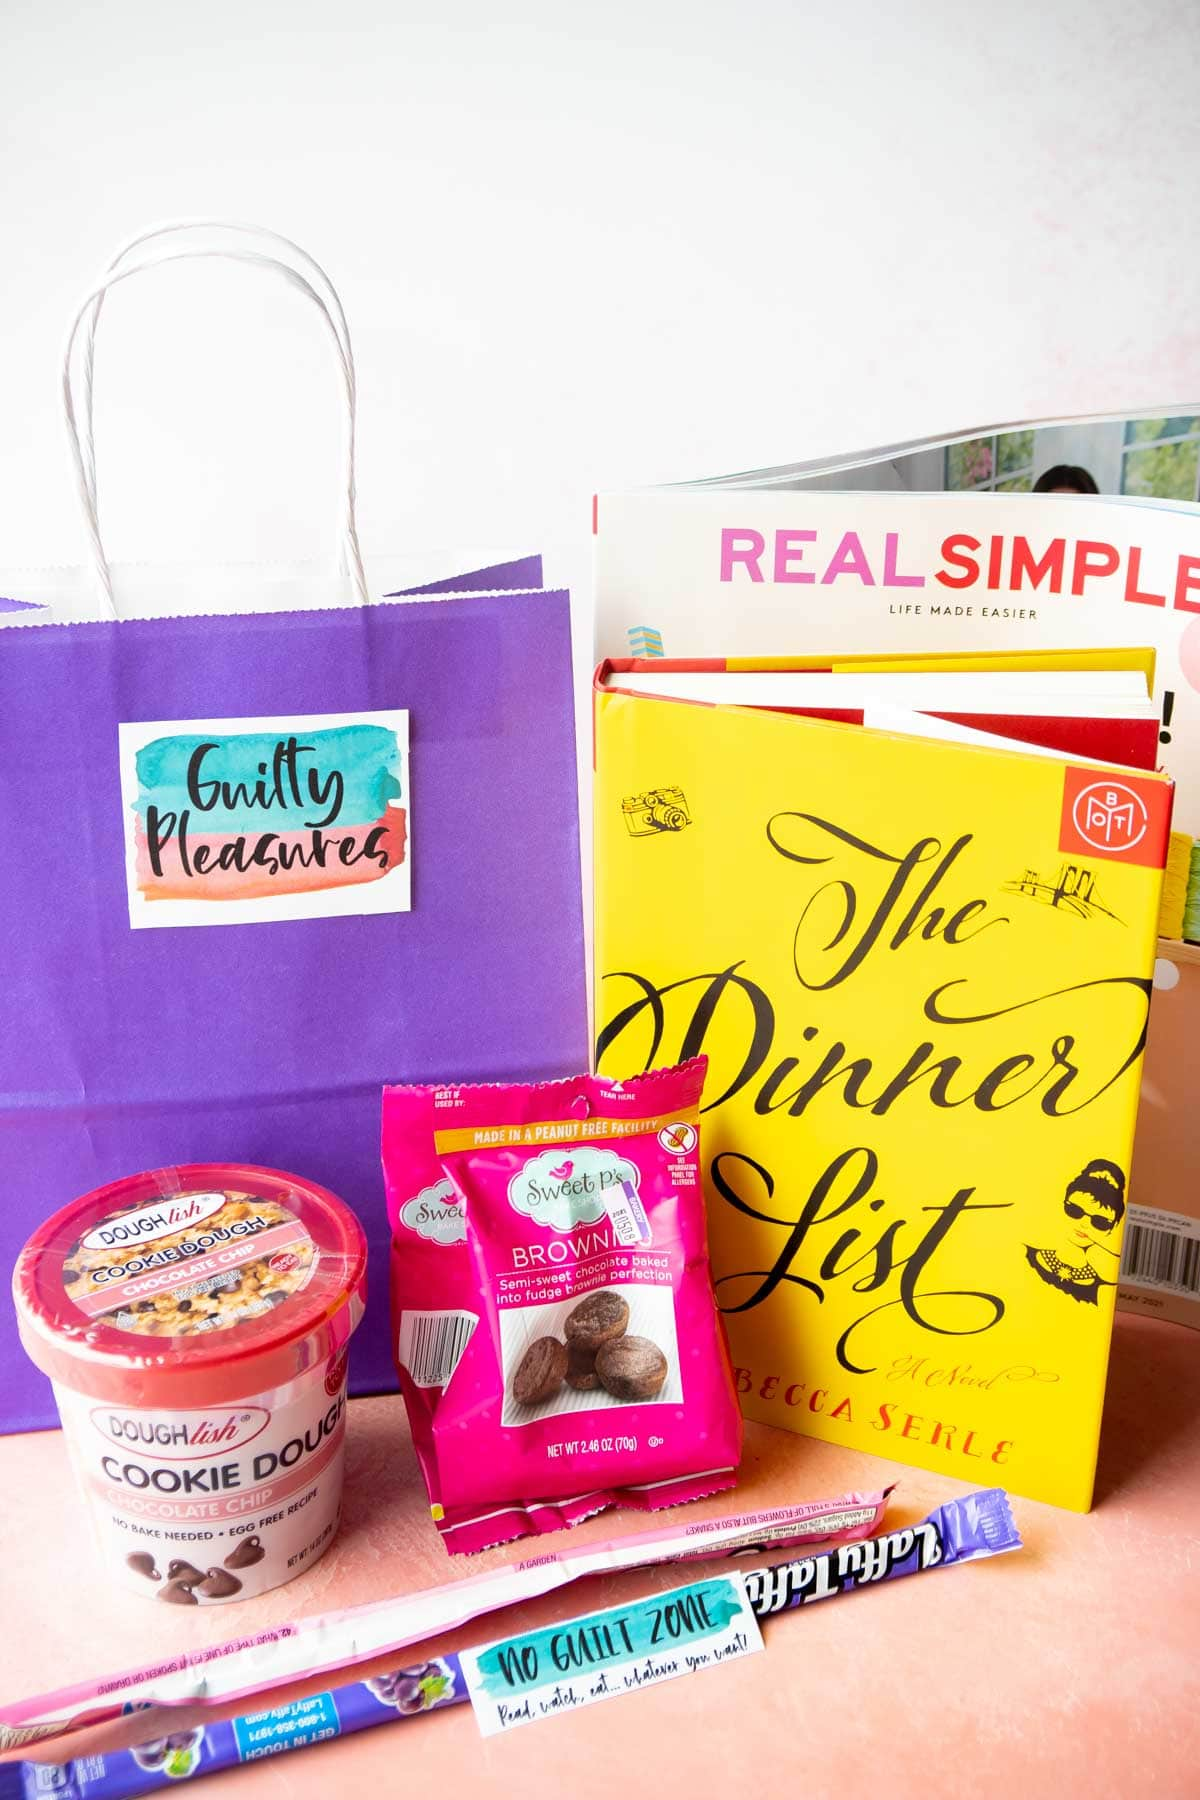 purple gift bag with a book and magazine aroun